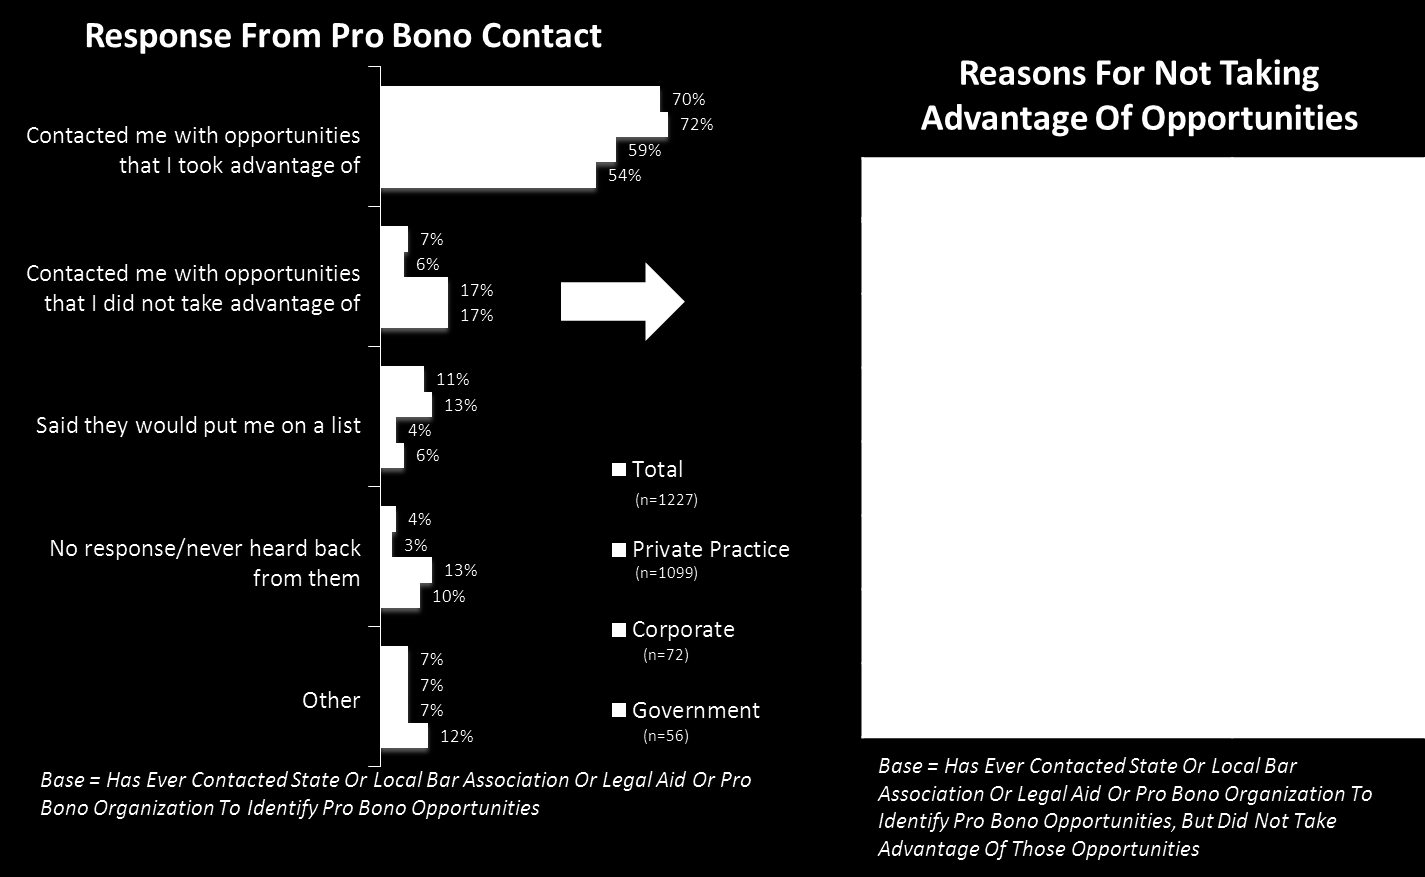 Figure 20: Percent of attorneys indicating various responses from their most recent inquiry regarding pro bono and reasons for not taking advantage of opportunities.